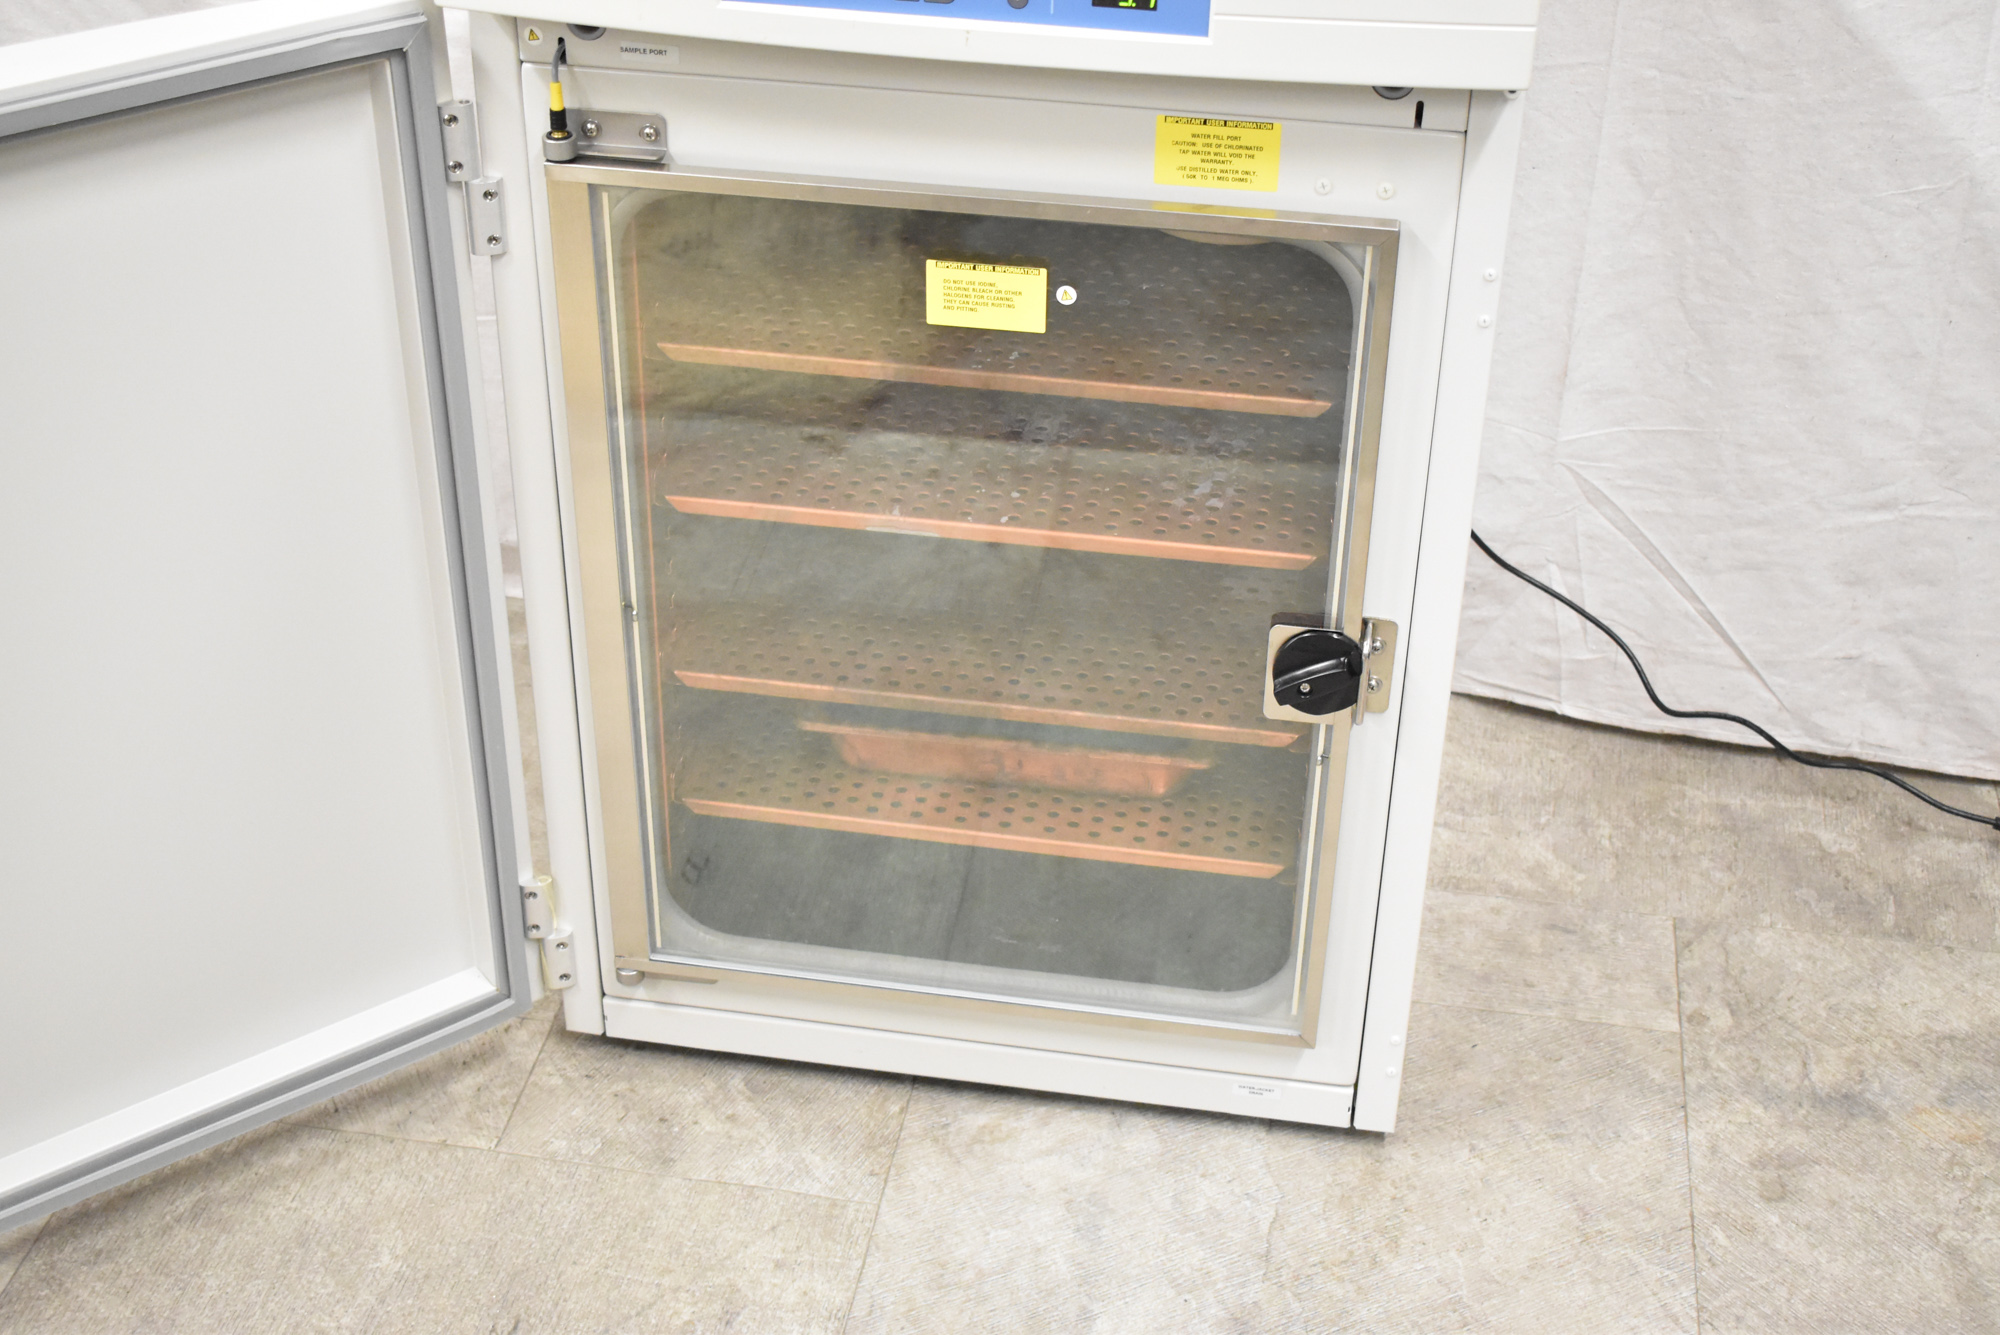 THERMO SCIENTIFIC 3130 FORMA SERIES II WATER JACKET CO2 INCUBATOR WITH DIGITAL MICROPROCESSOR - Image 6 of 8